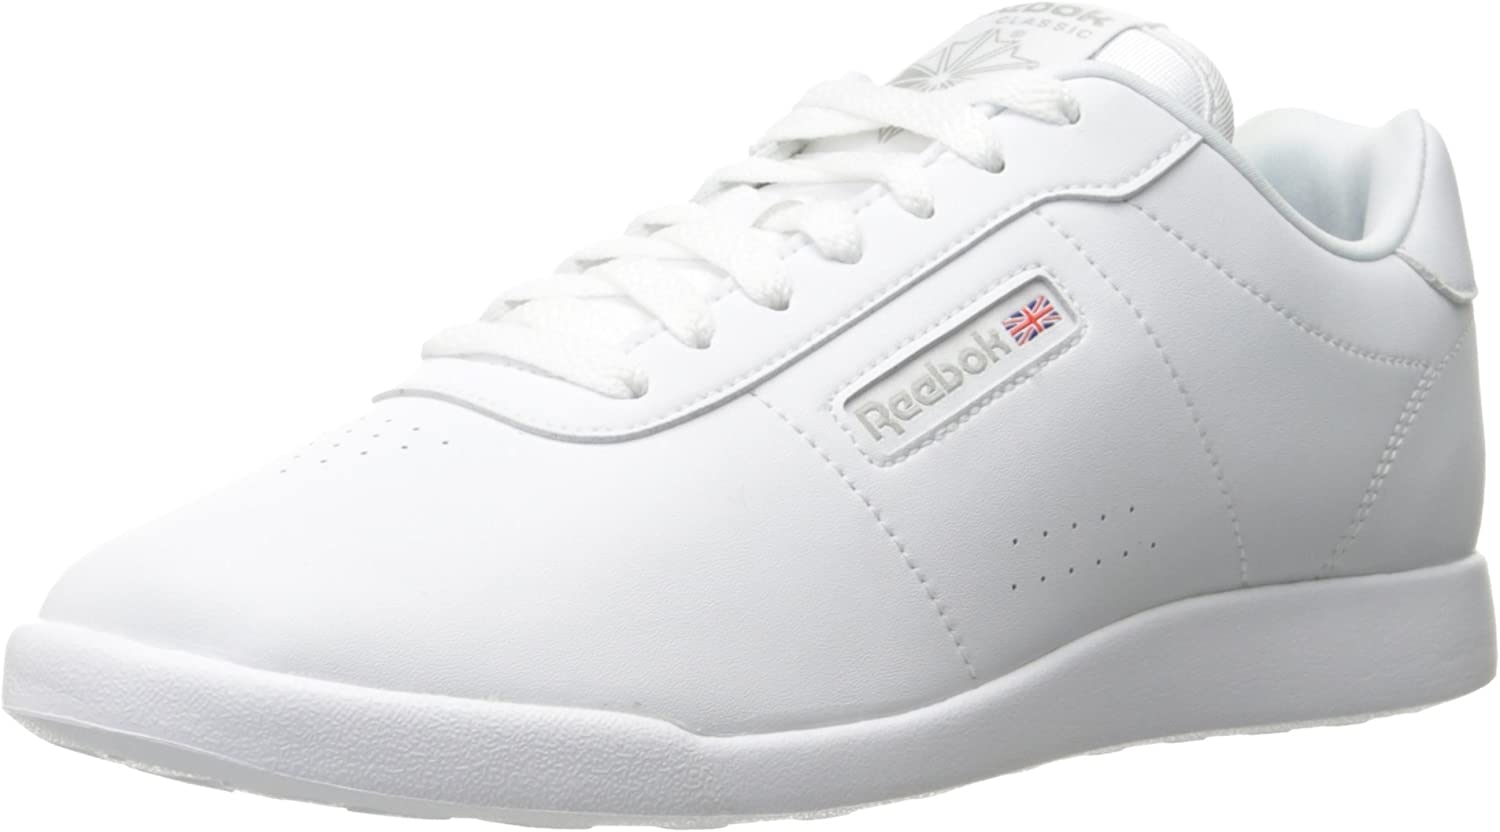 Reebok Women's Princess Lite Classic shoes